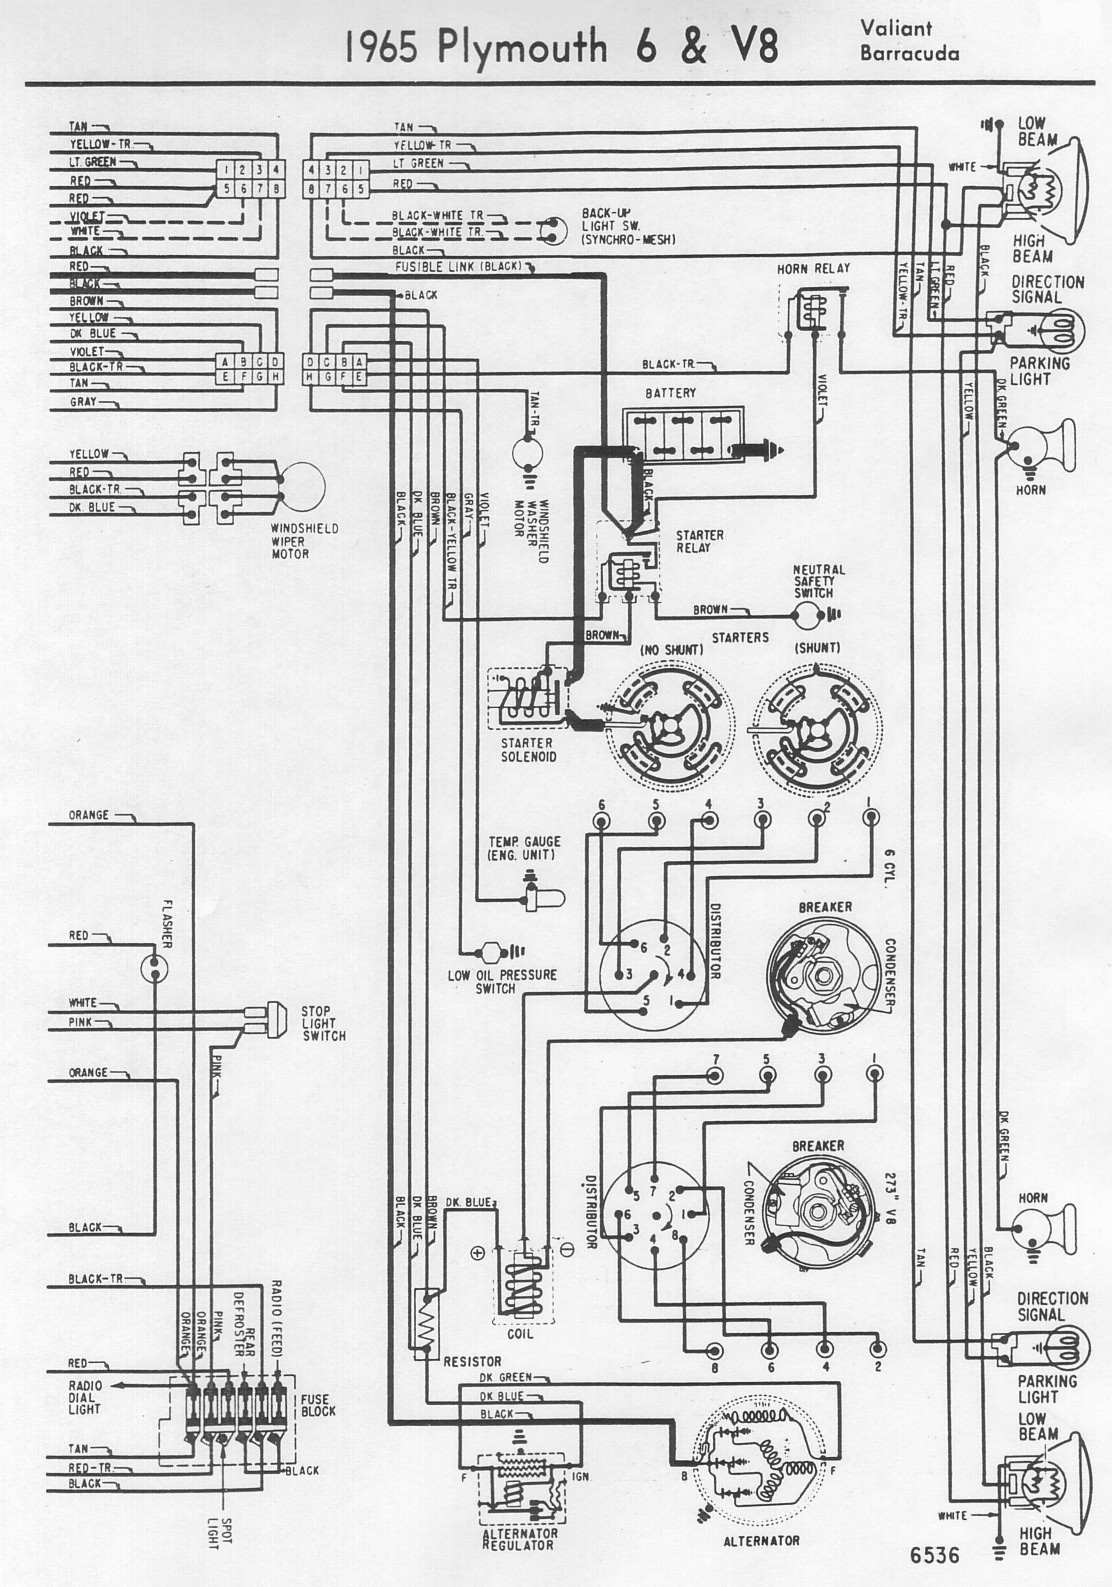 1968 ford headlight switch wiring diagram on 1968 images free 1965 Chevy Truck Wiring Diagram 1968 ford headlight switch wiring diagram 11 mustang headlight switch wiring diagram 1970 chevy headlight dimmer diagram 1965 chevy truck wiring diagram